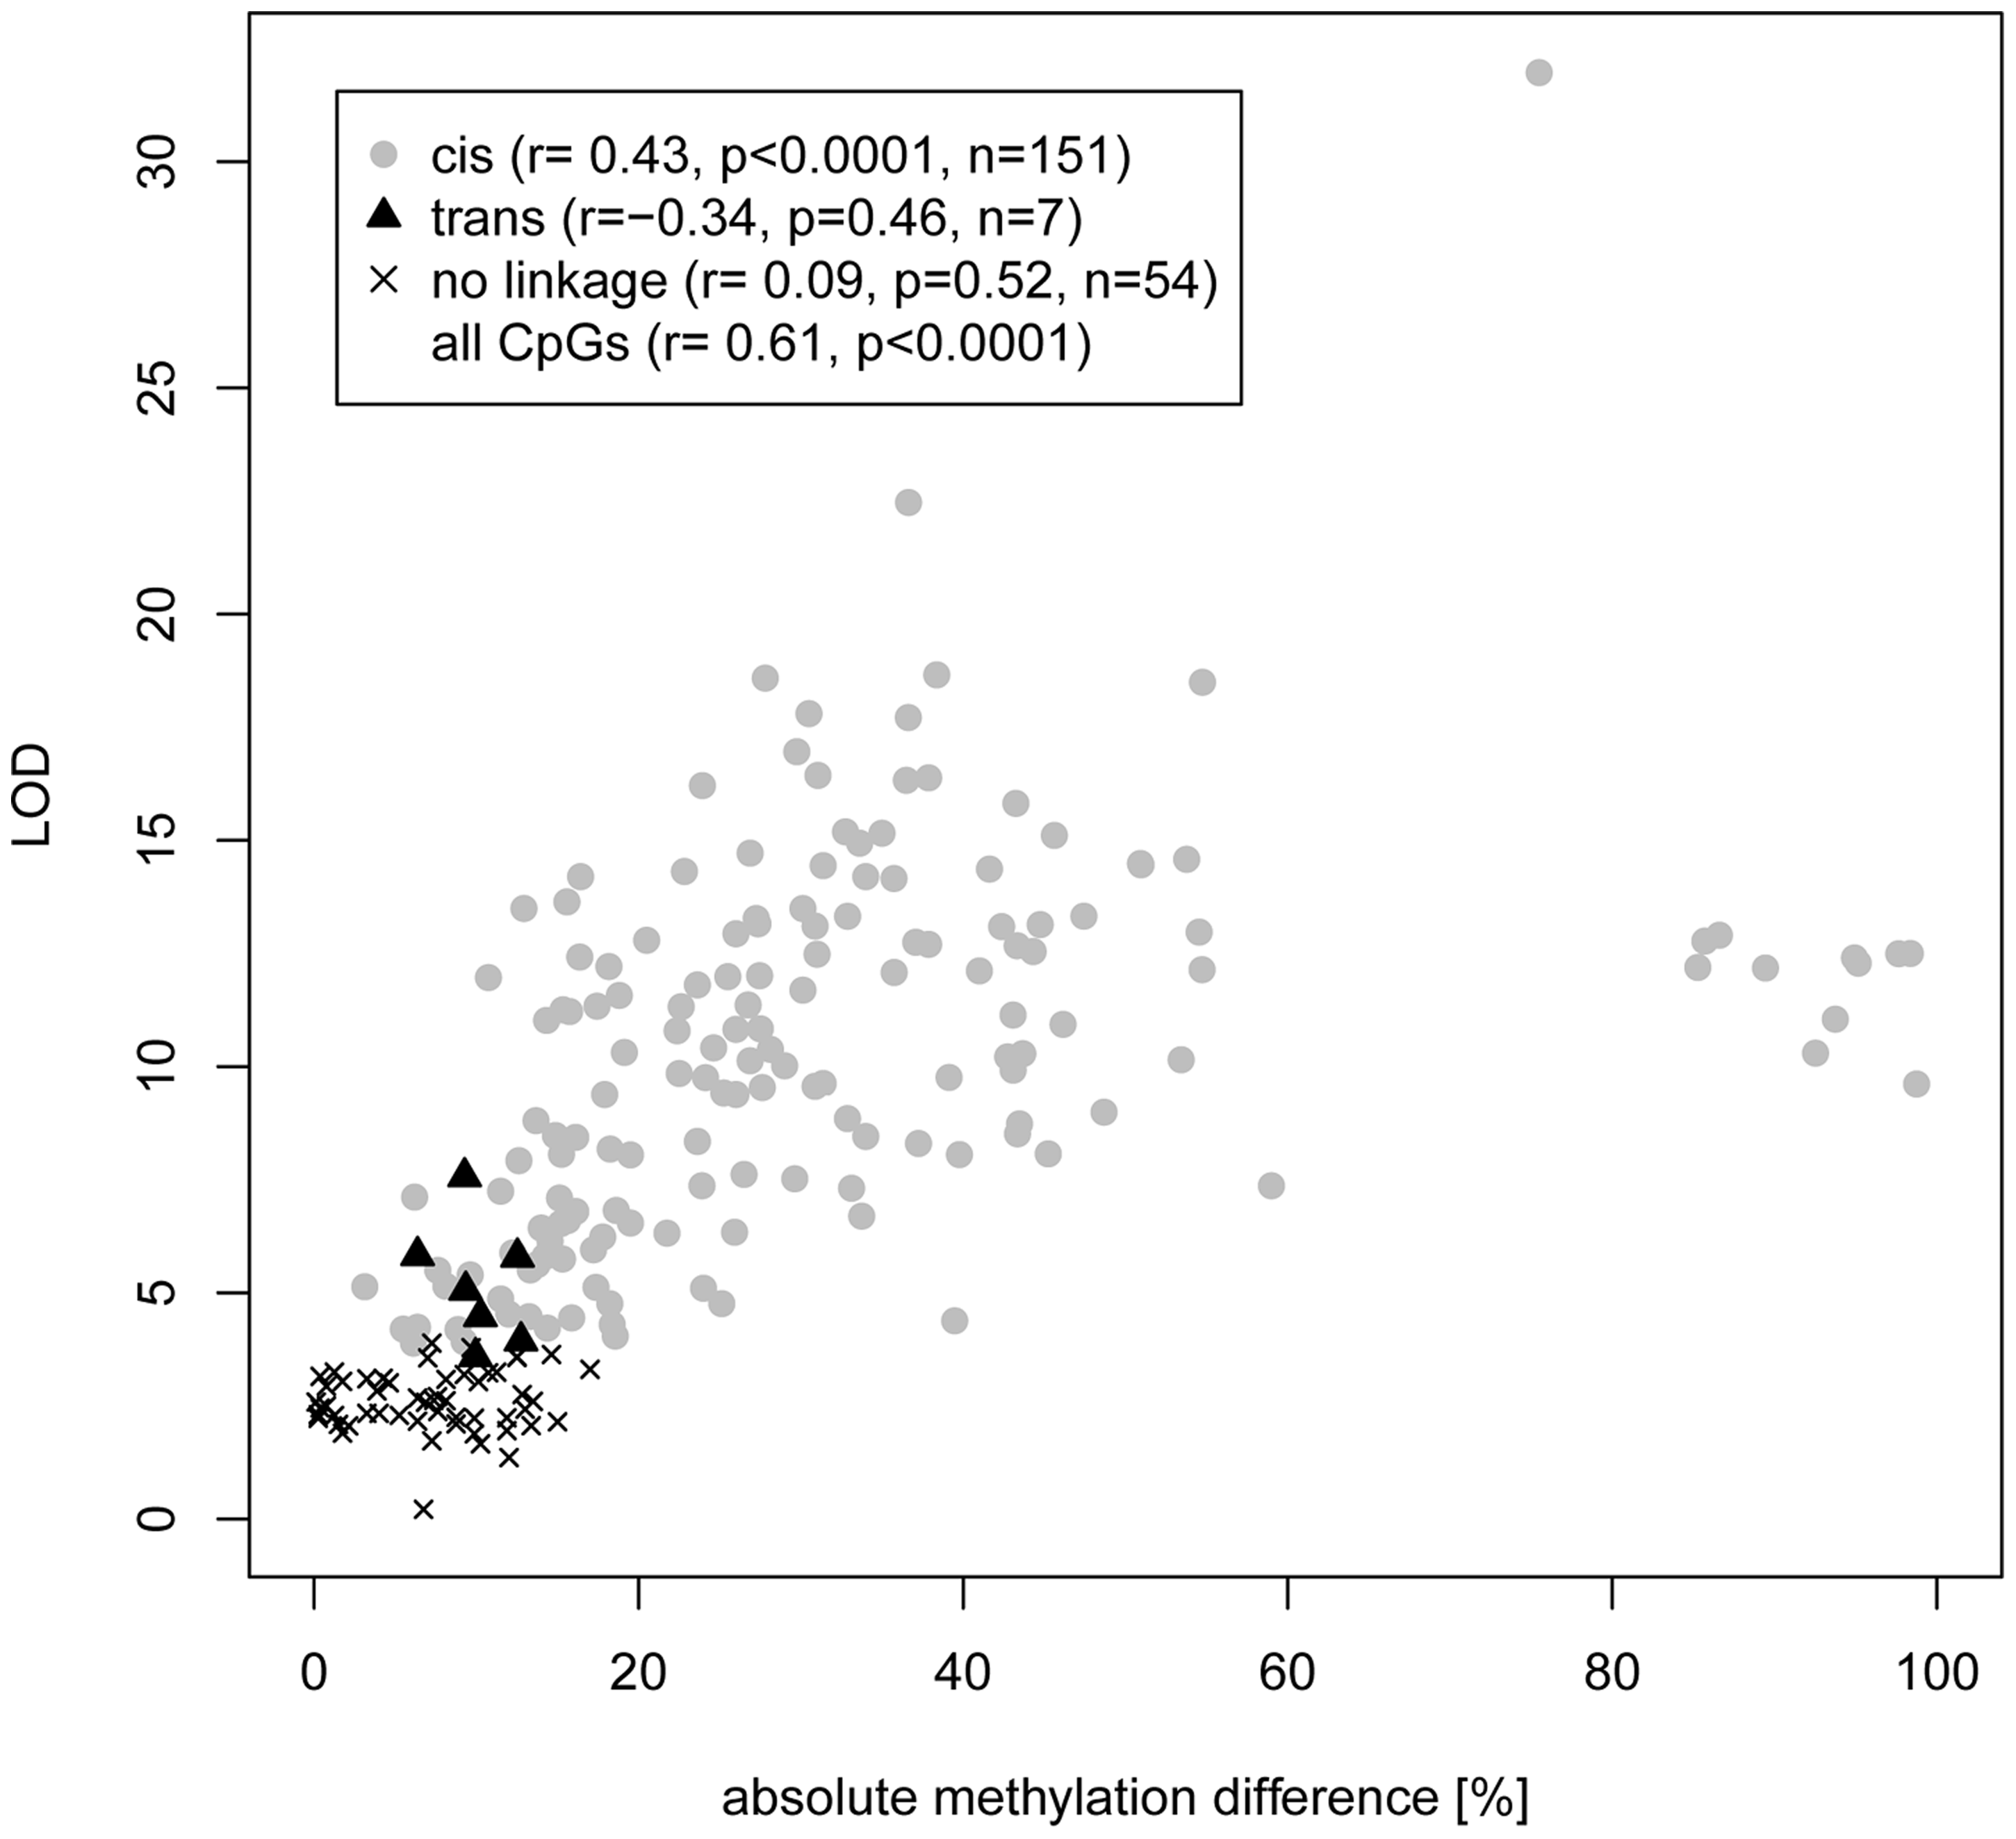 Correlation of CpG cytosine meth-QTL linkage and difference in CpG methylation between parental strains.